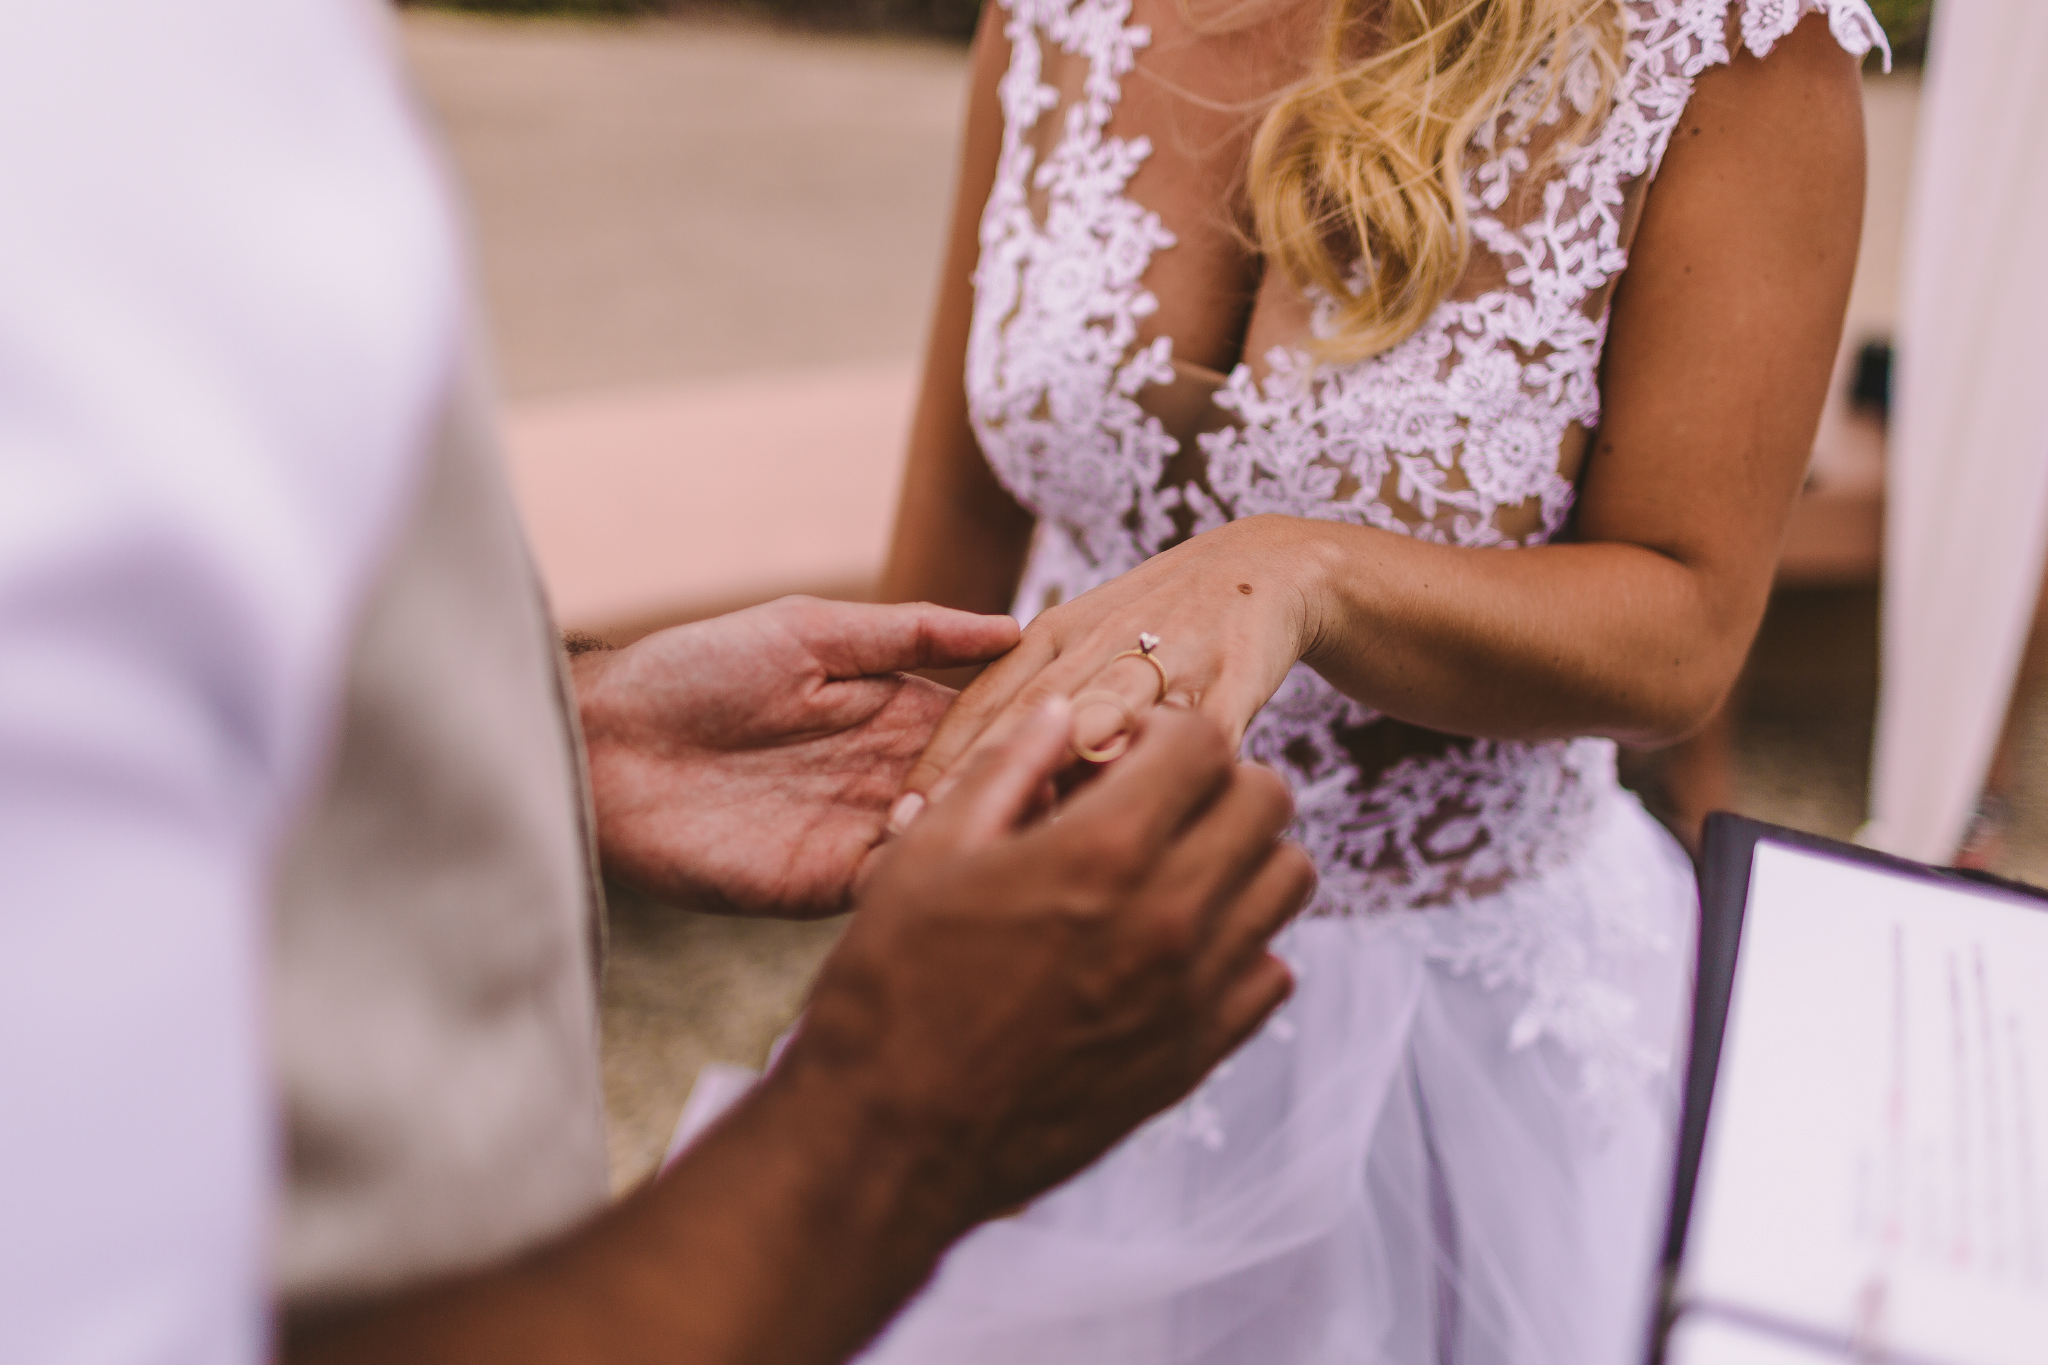 san diego wedding   photographer | torso of woman in dress with wedding ring on her finger